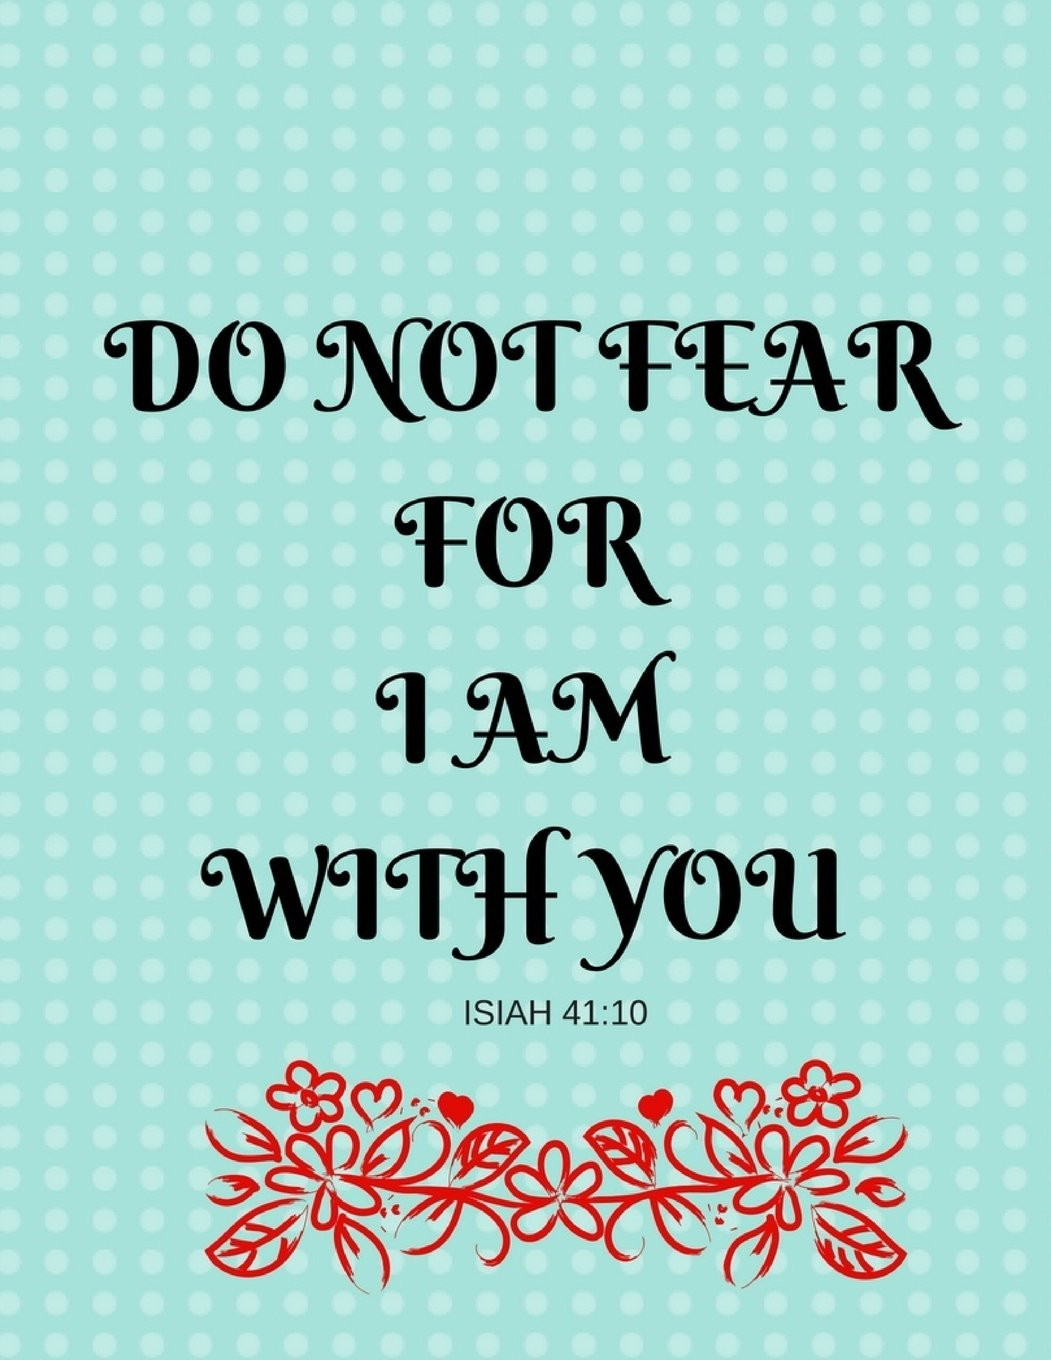 Do Not Fear For I Am With You Isiah 41:10: Bible Verse Message Notebook (Composition Book Journal) (8.5 x 11 Large) ebook